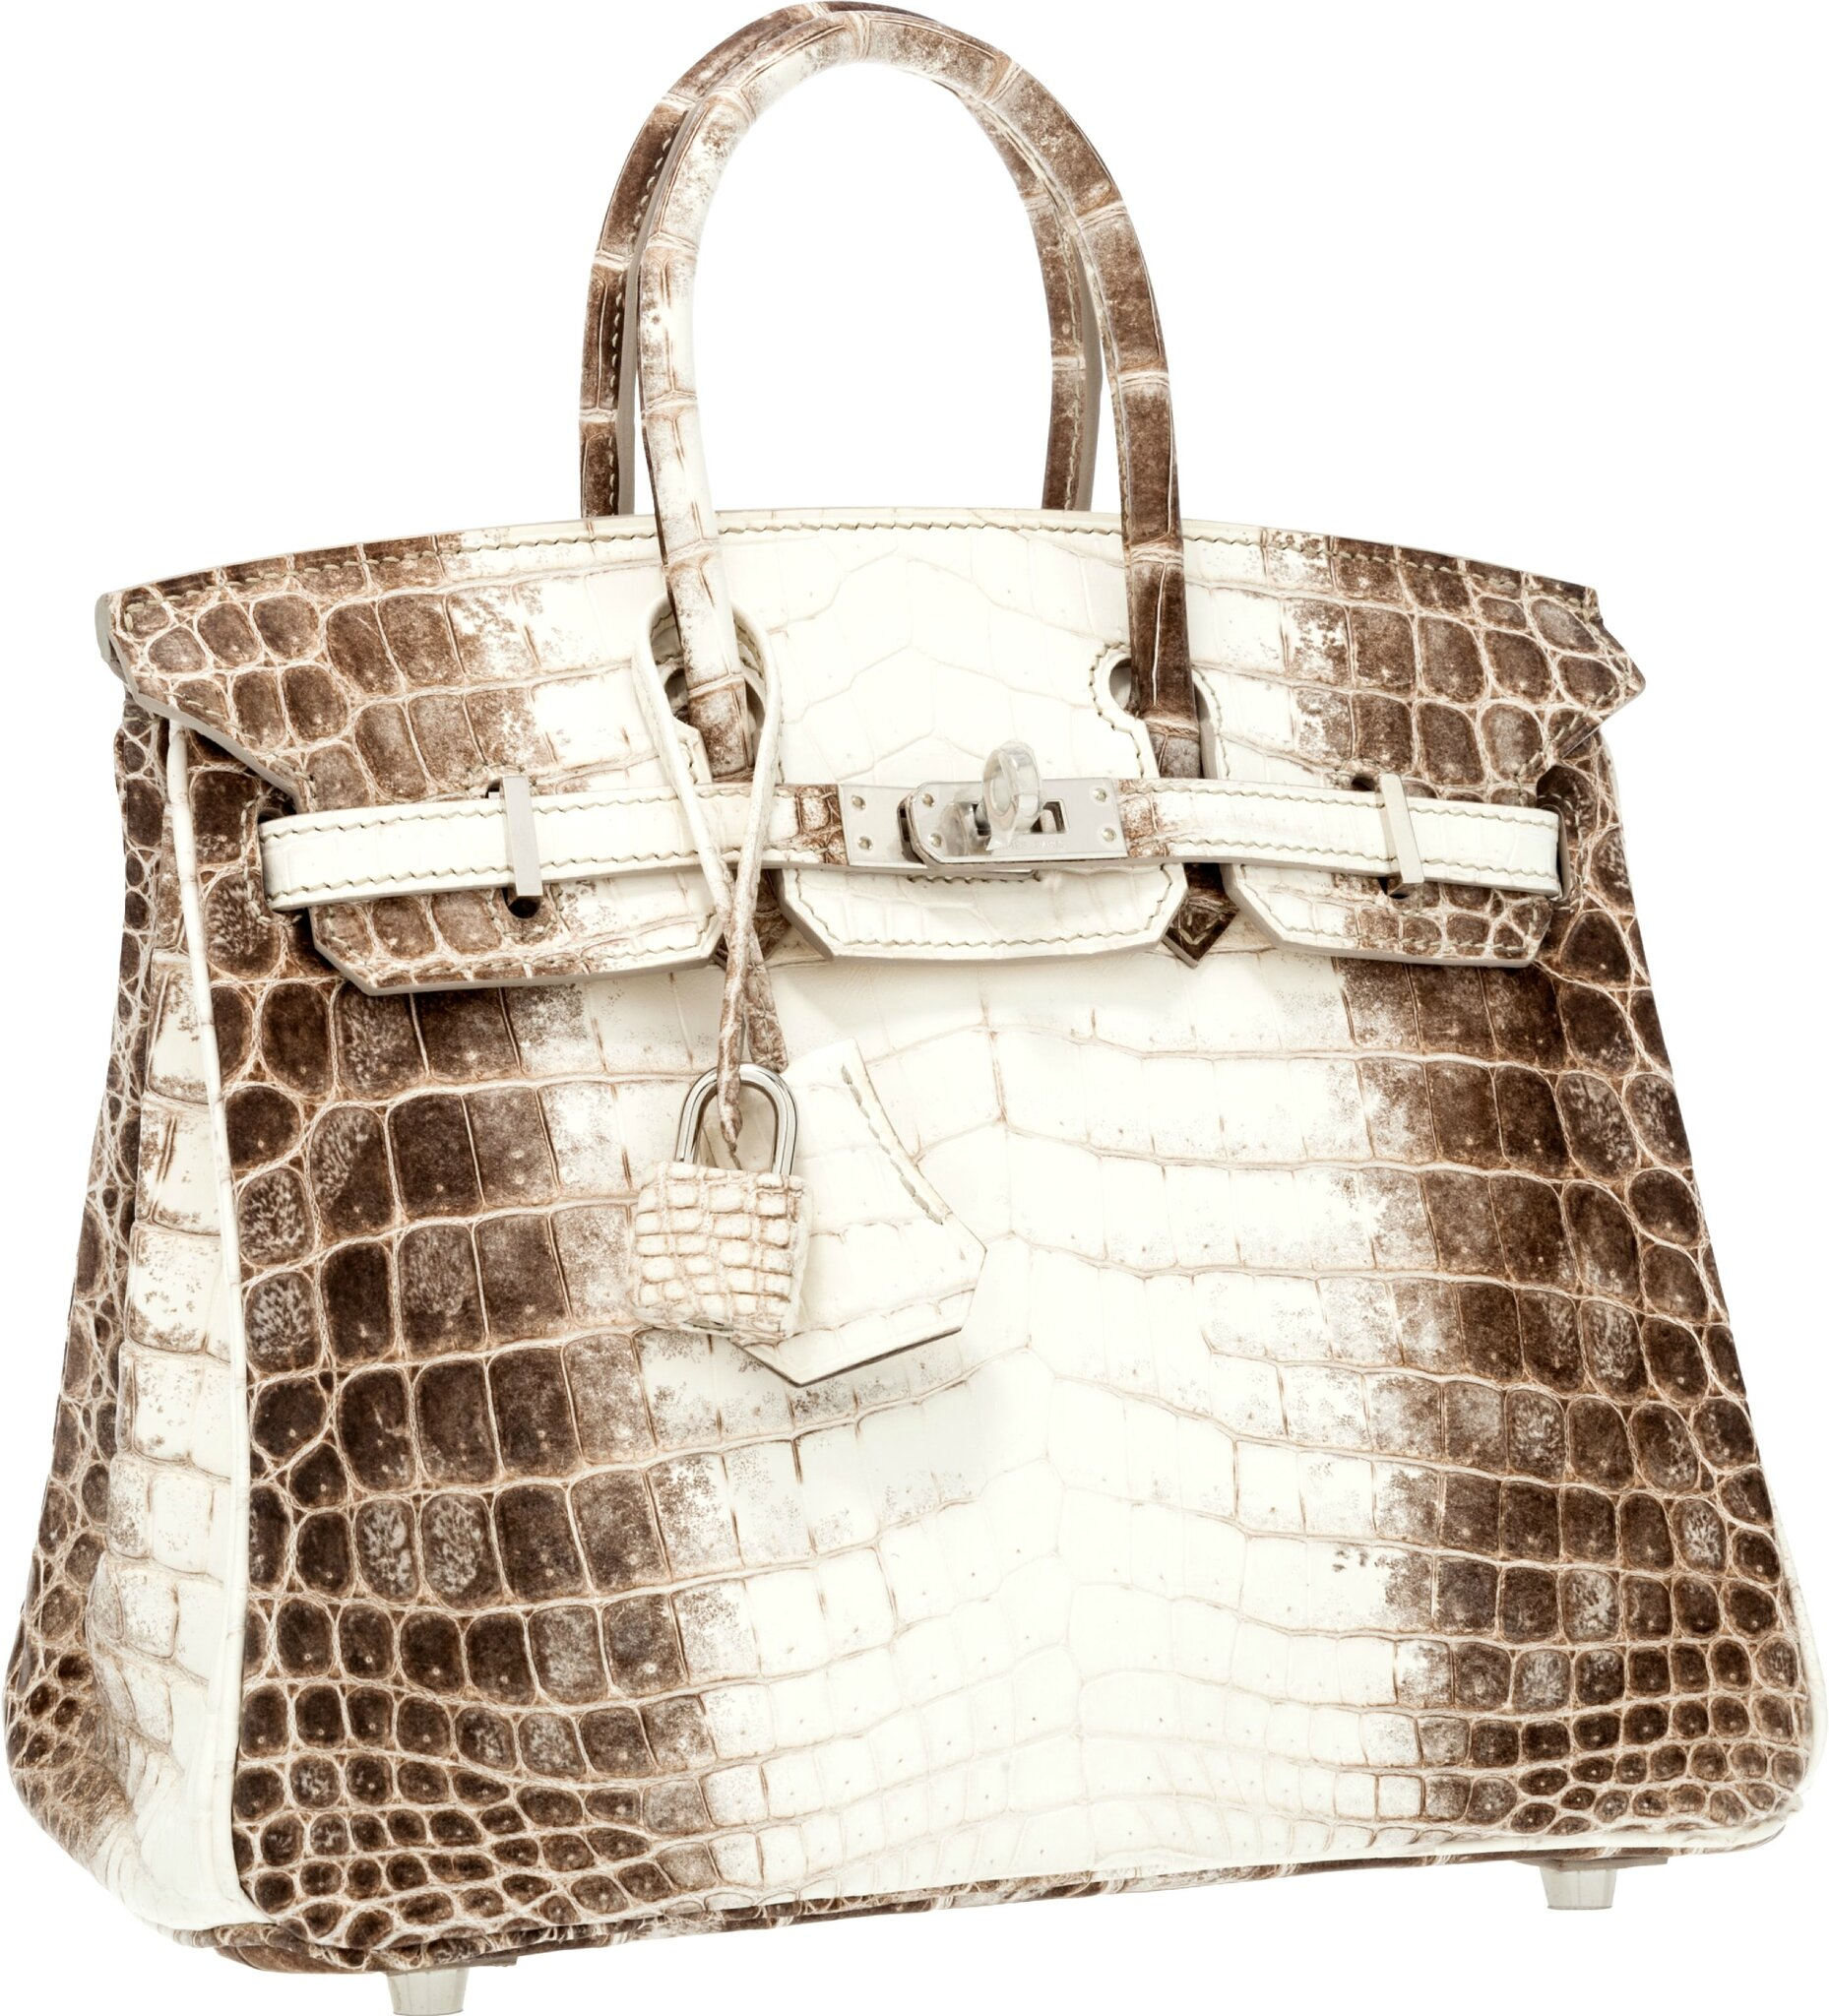 fcef168e7d7a Two Hermes  Himalayan  handbags bookend Heritage New York Luxury  Accessories Auction